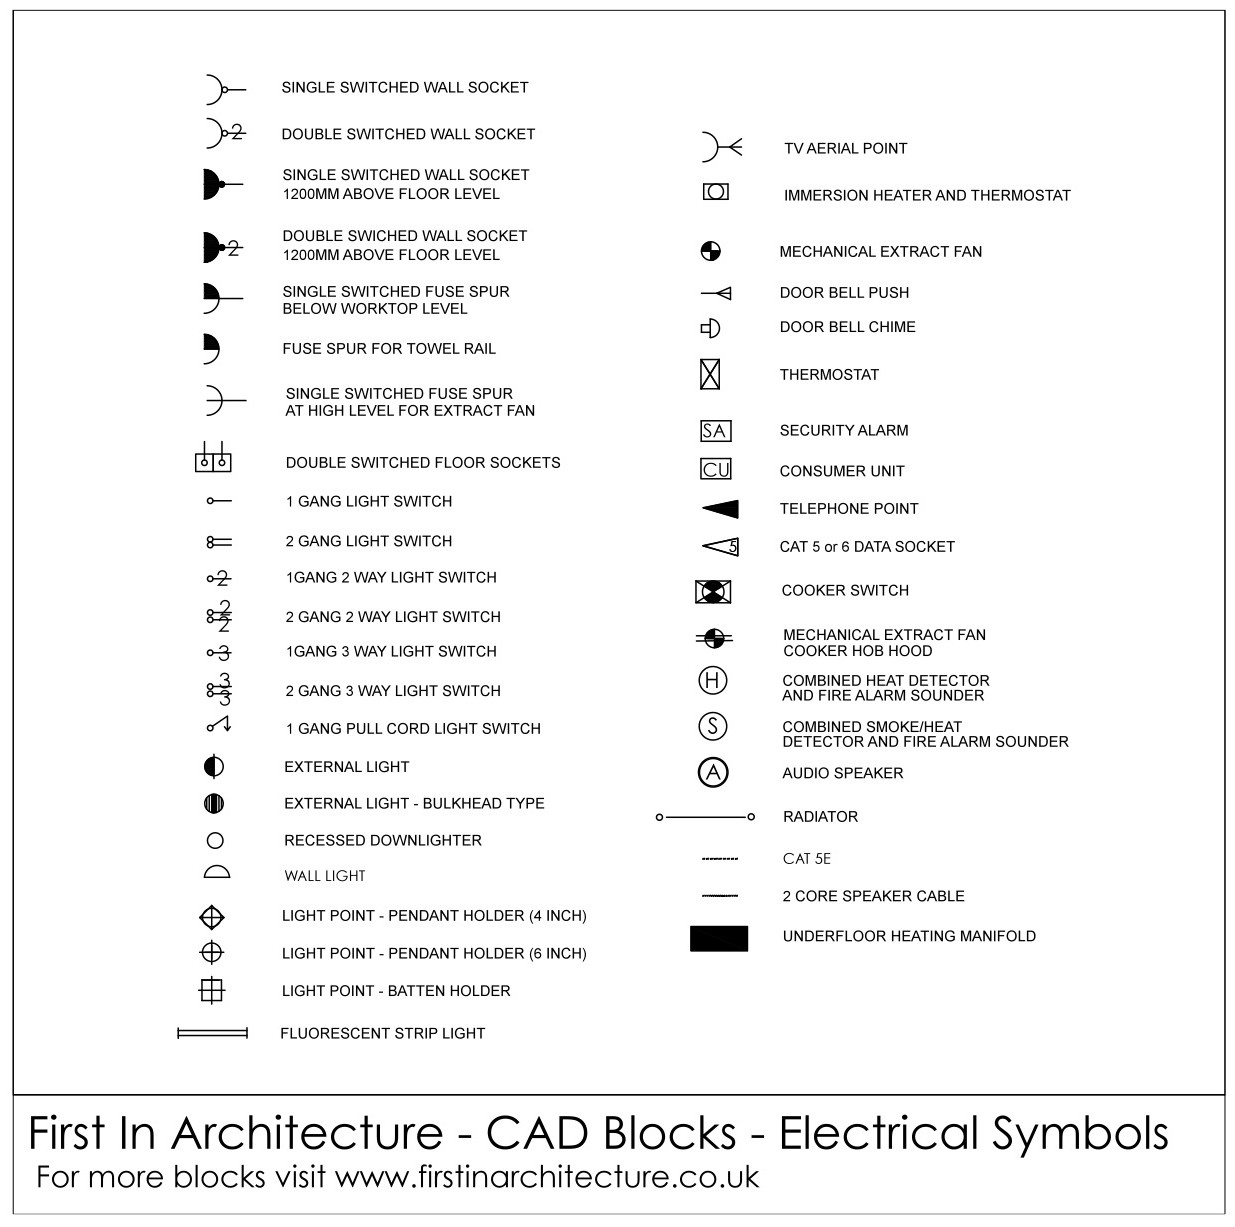 Free CAD Blocks - Electrical Symbols